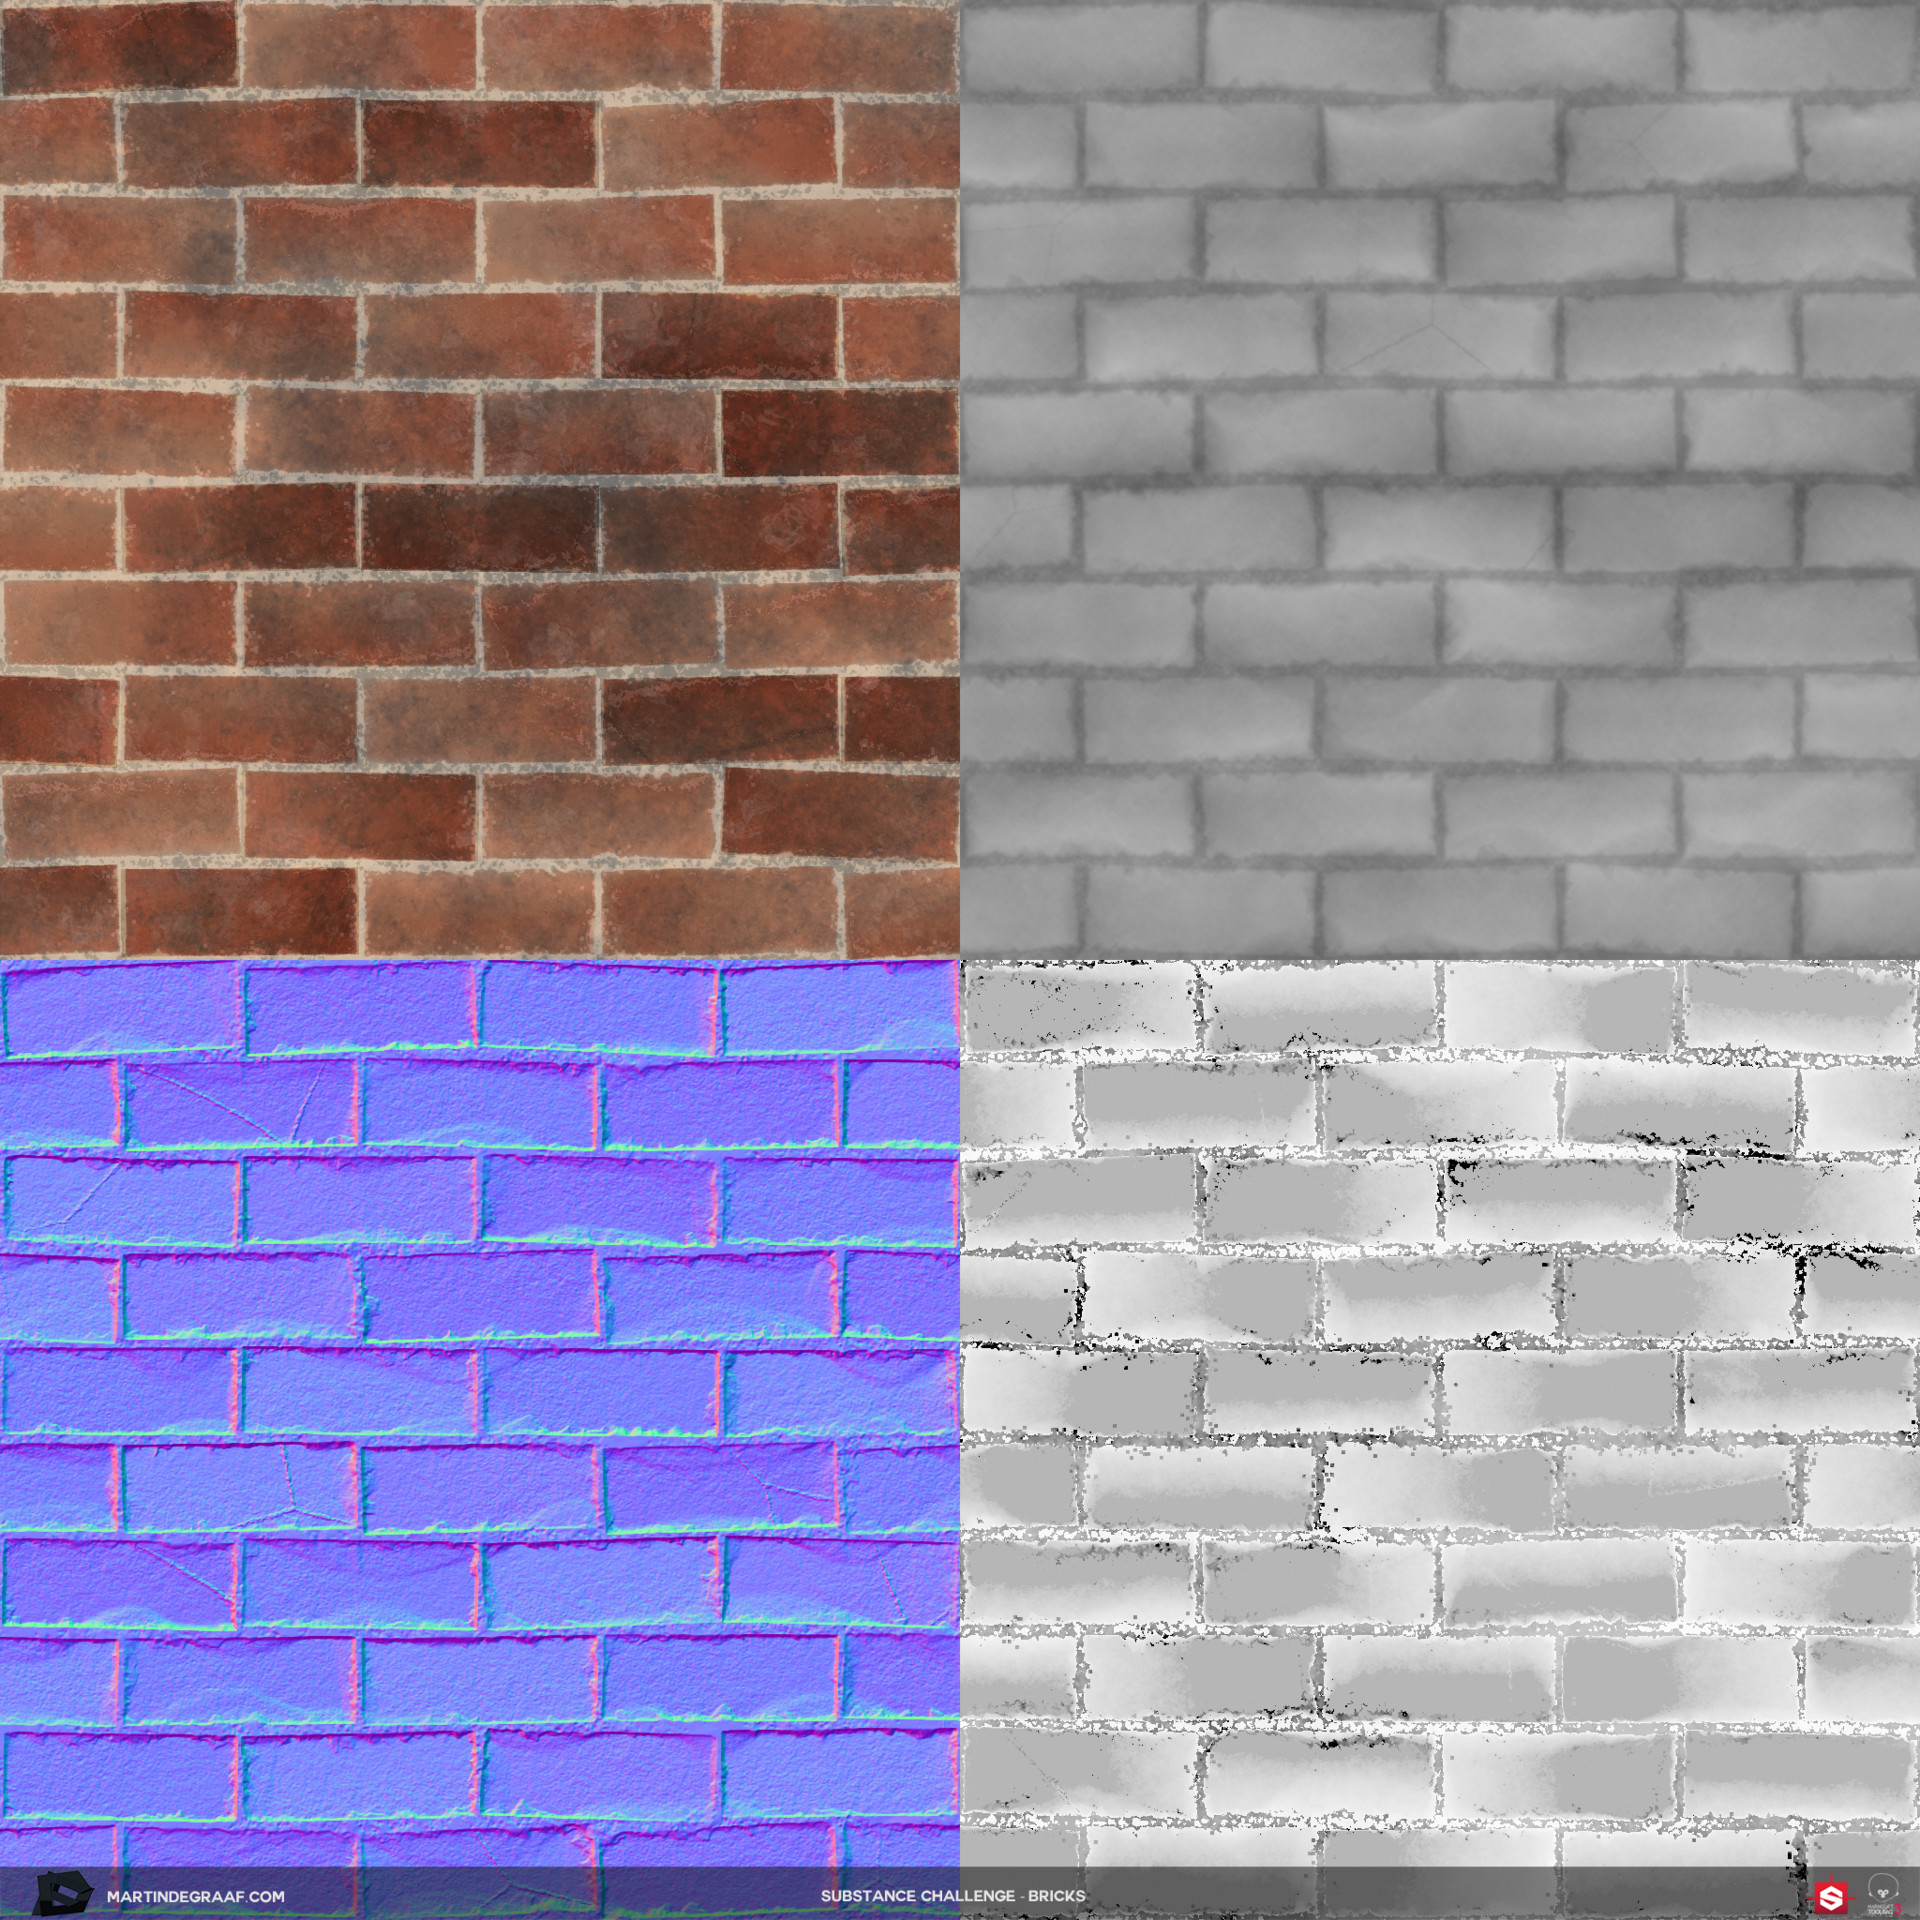 Martin de graaf substance challenge bricks substance texturesheet martin de graaf 2017